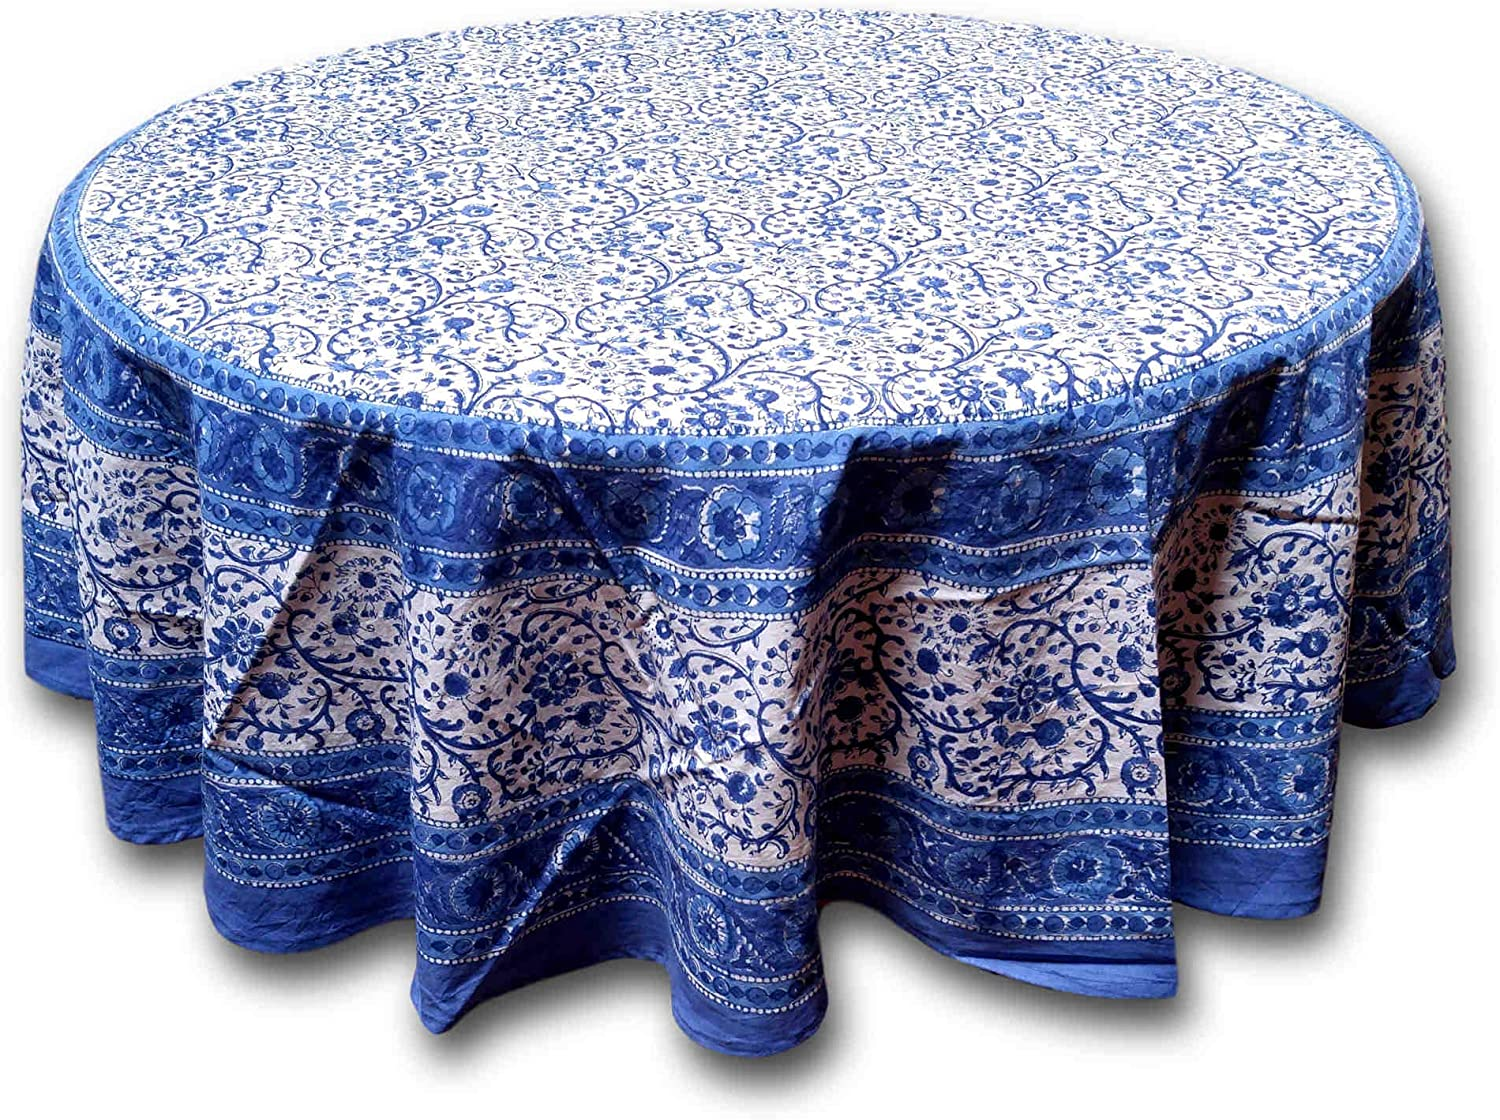 Amazon Com Rajasthan Block Print Tablecloth 72 Inch Round Posters Prints